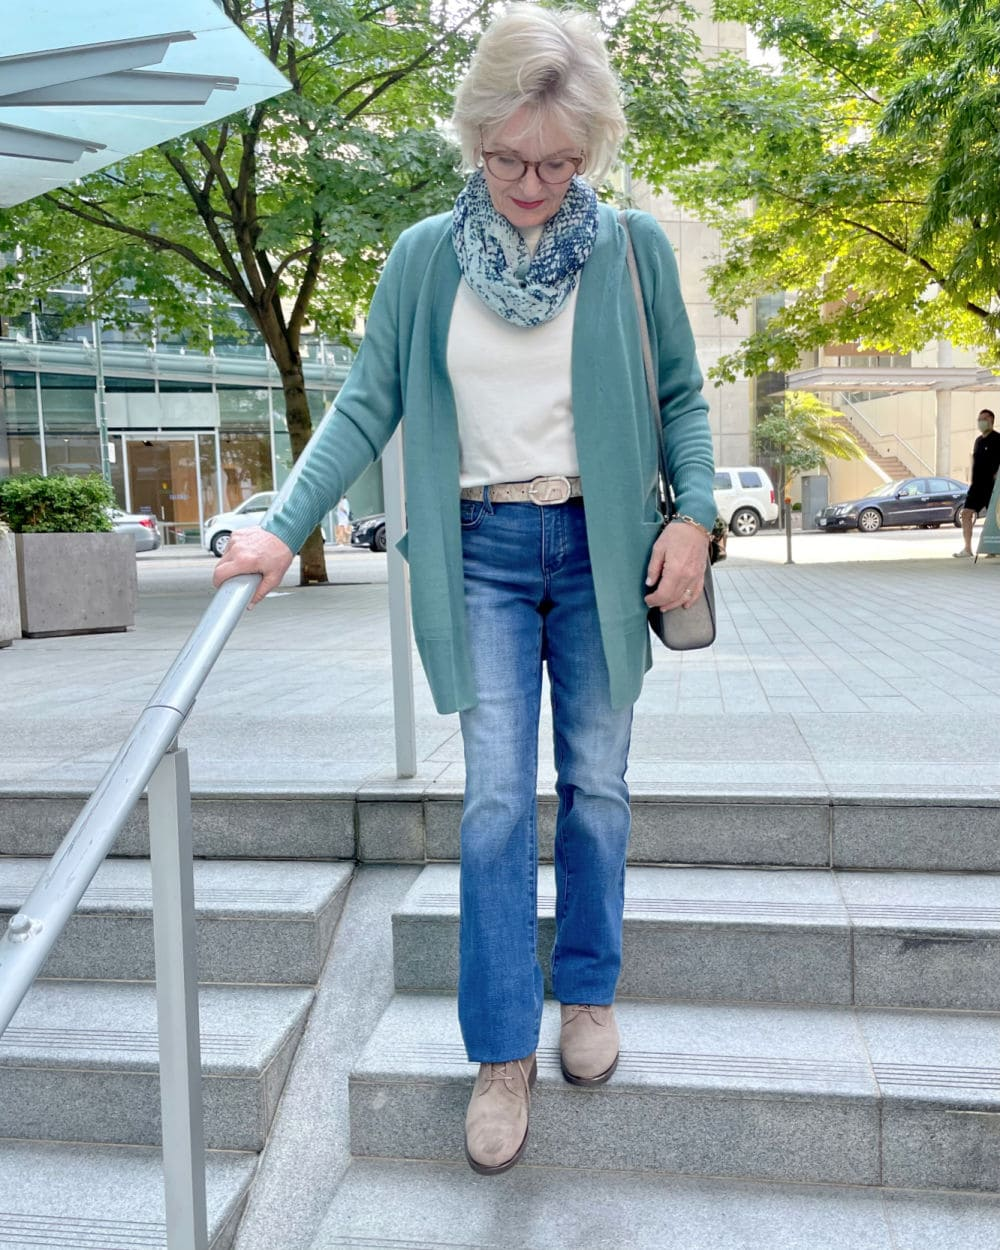 woman walking down stairs wearing teal sweater and nydj jeans from the Nsale